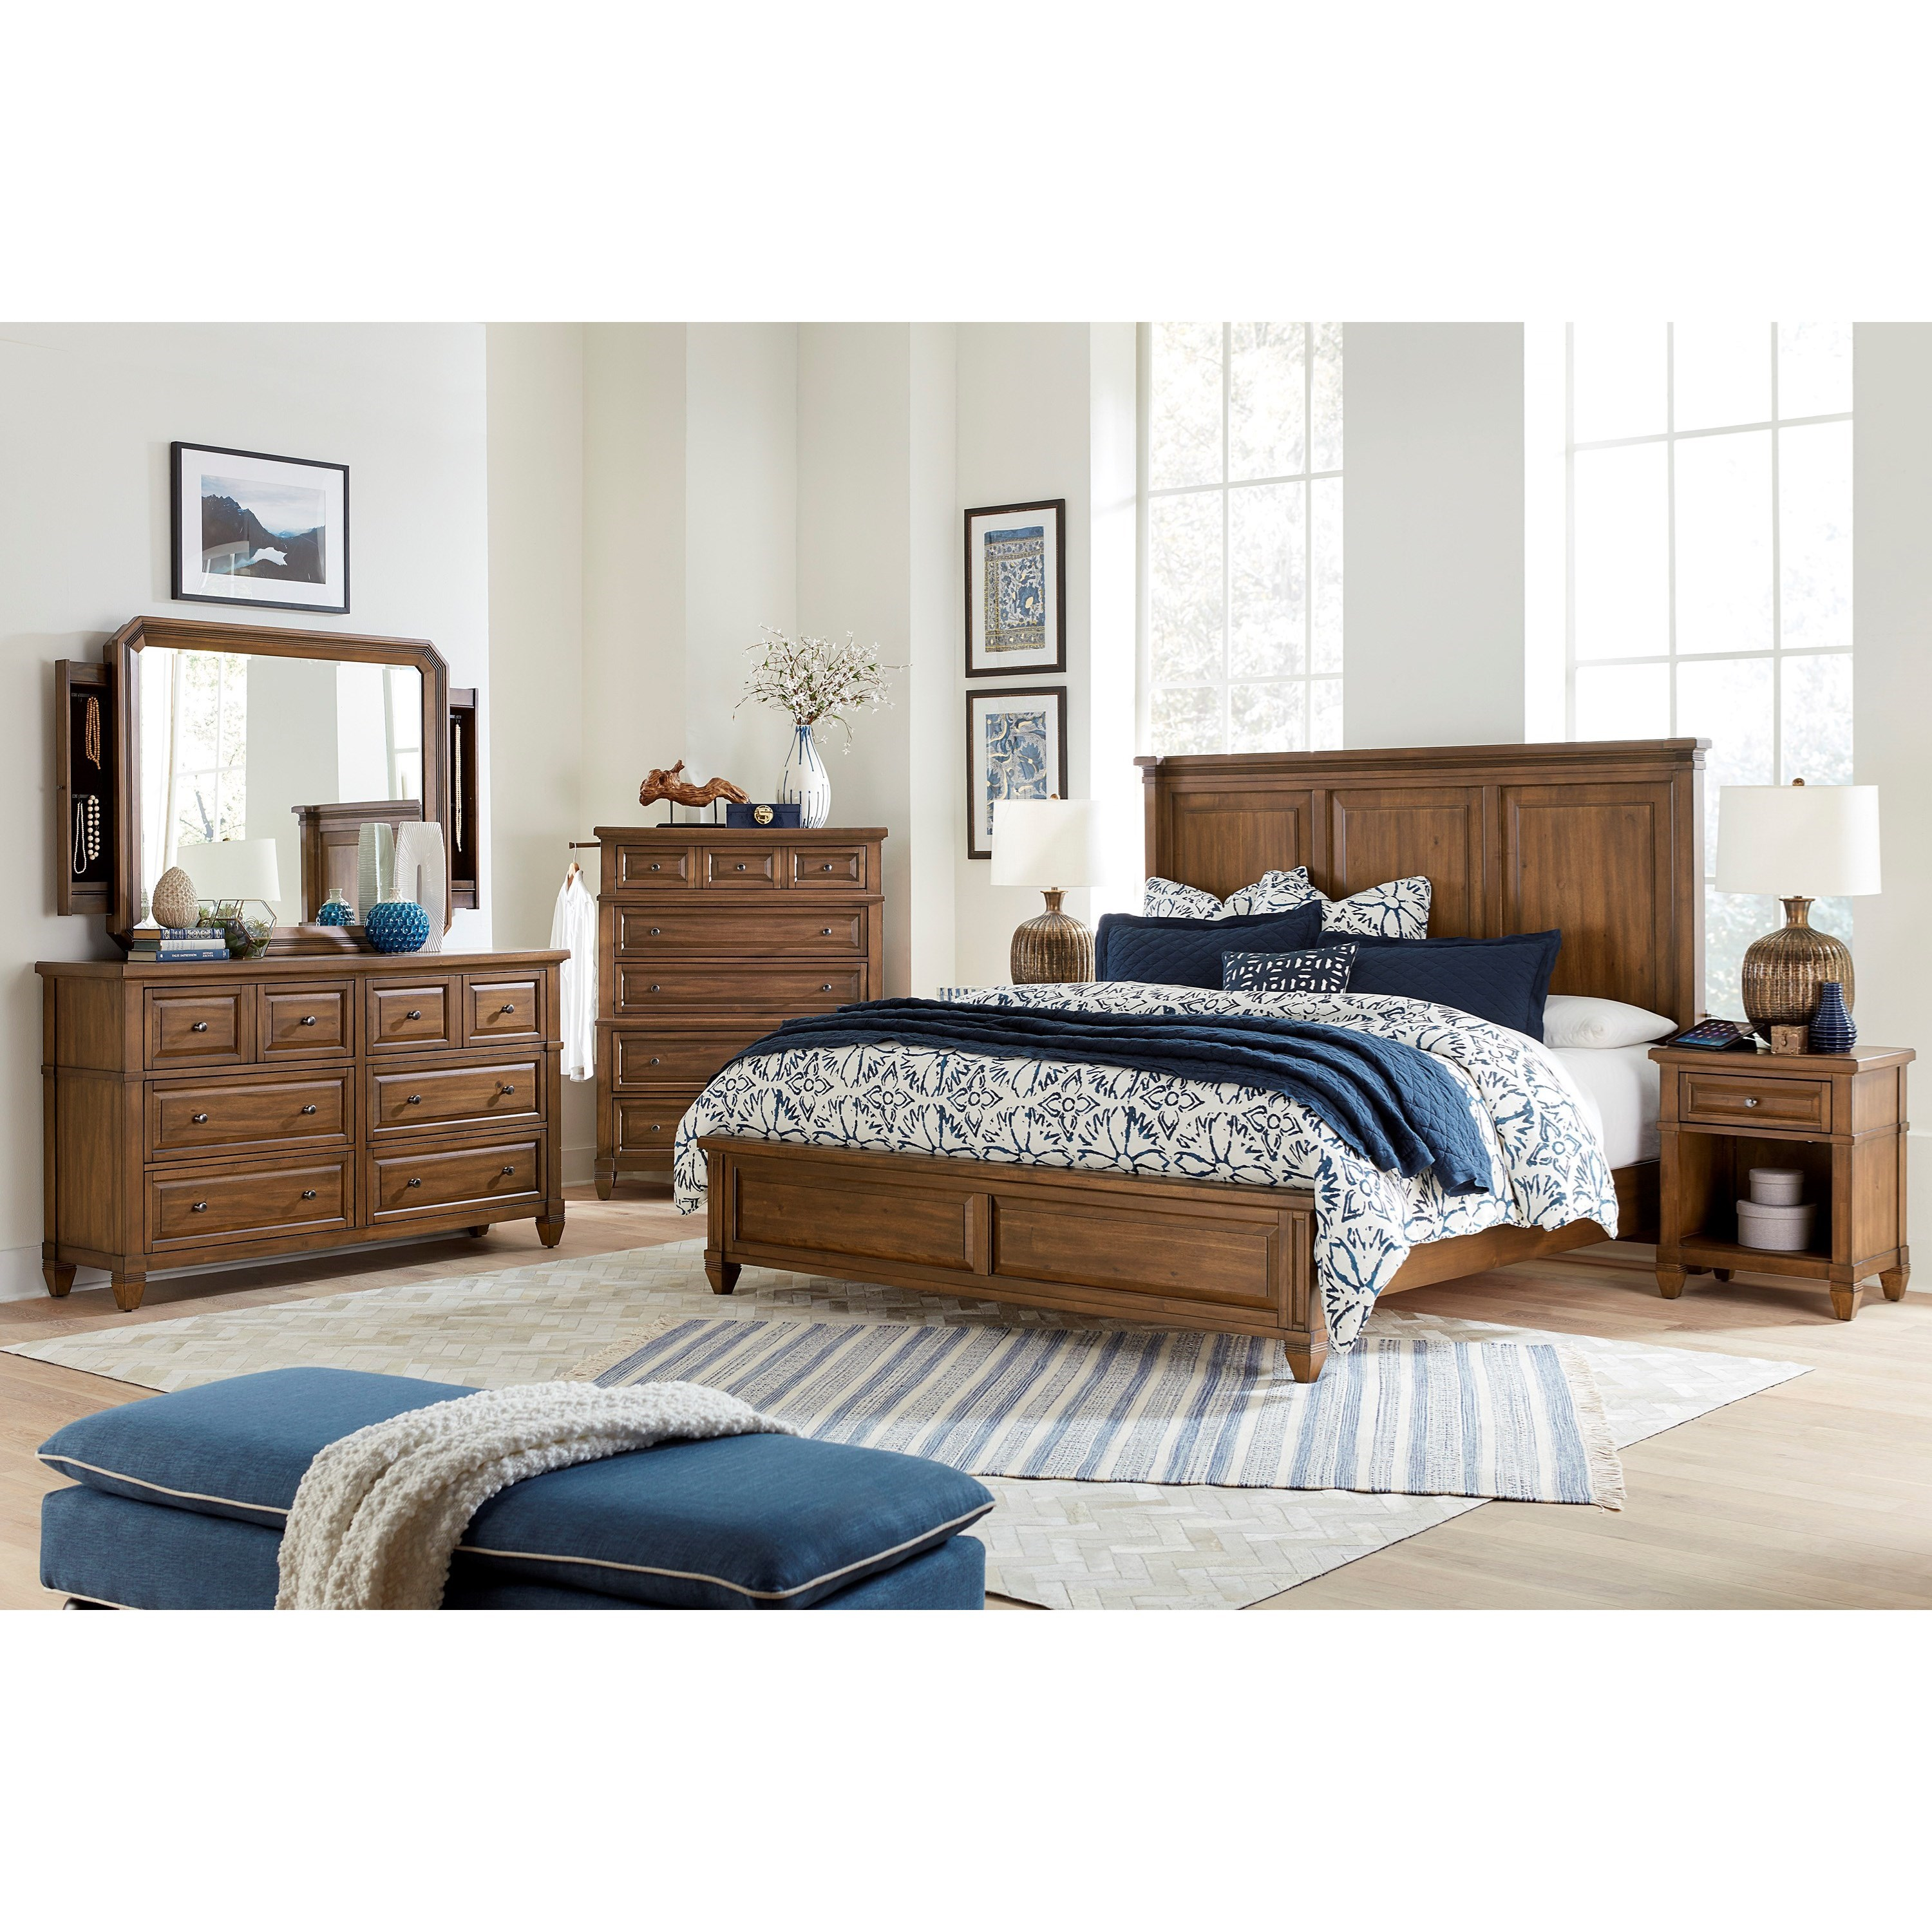 Thornton King Bedroom Group by Aspenhome at Walker's Furniture